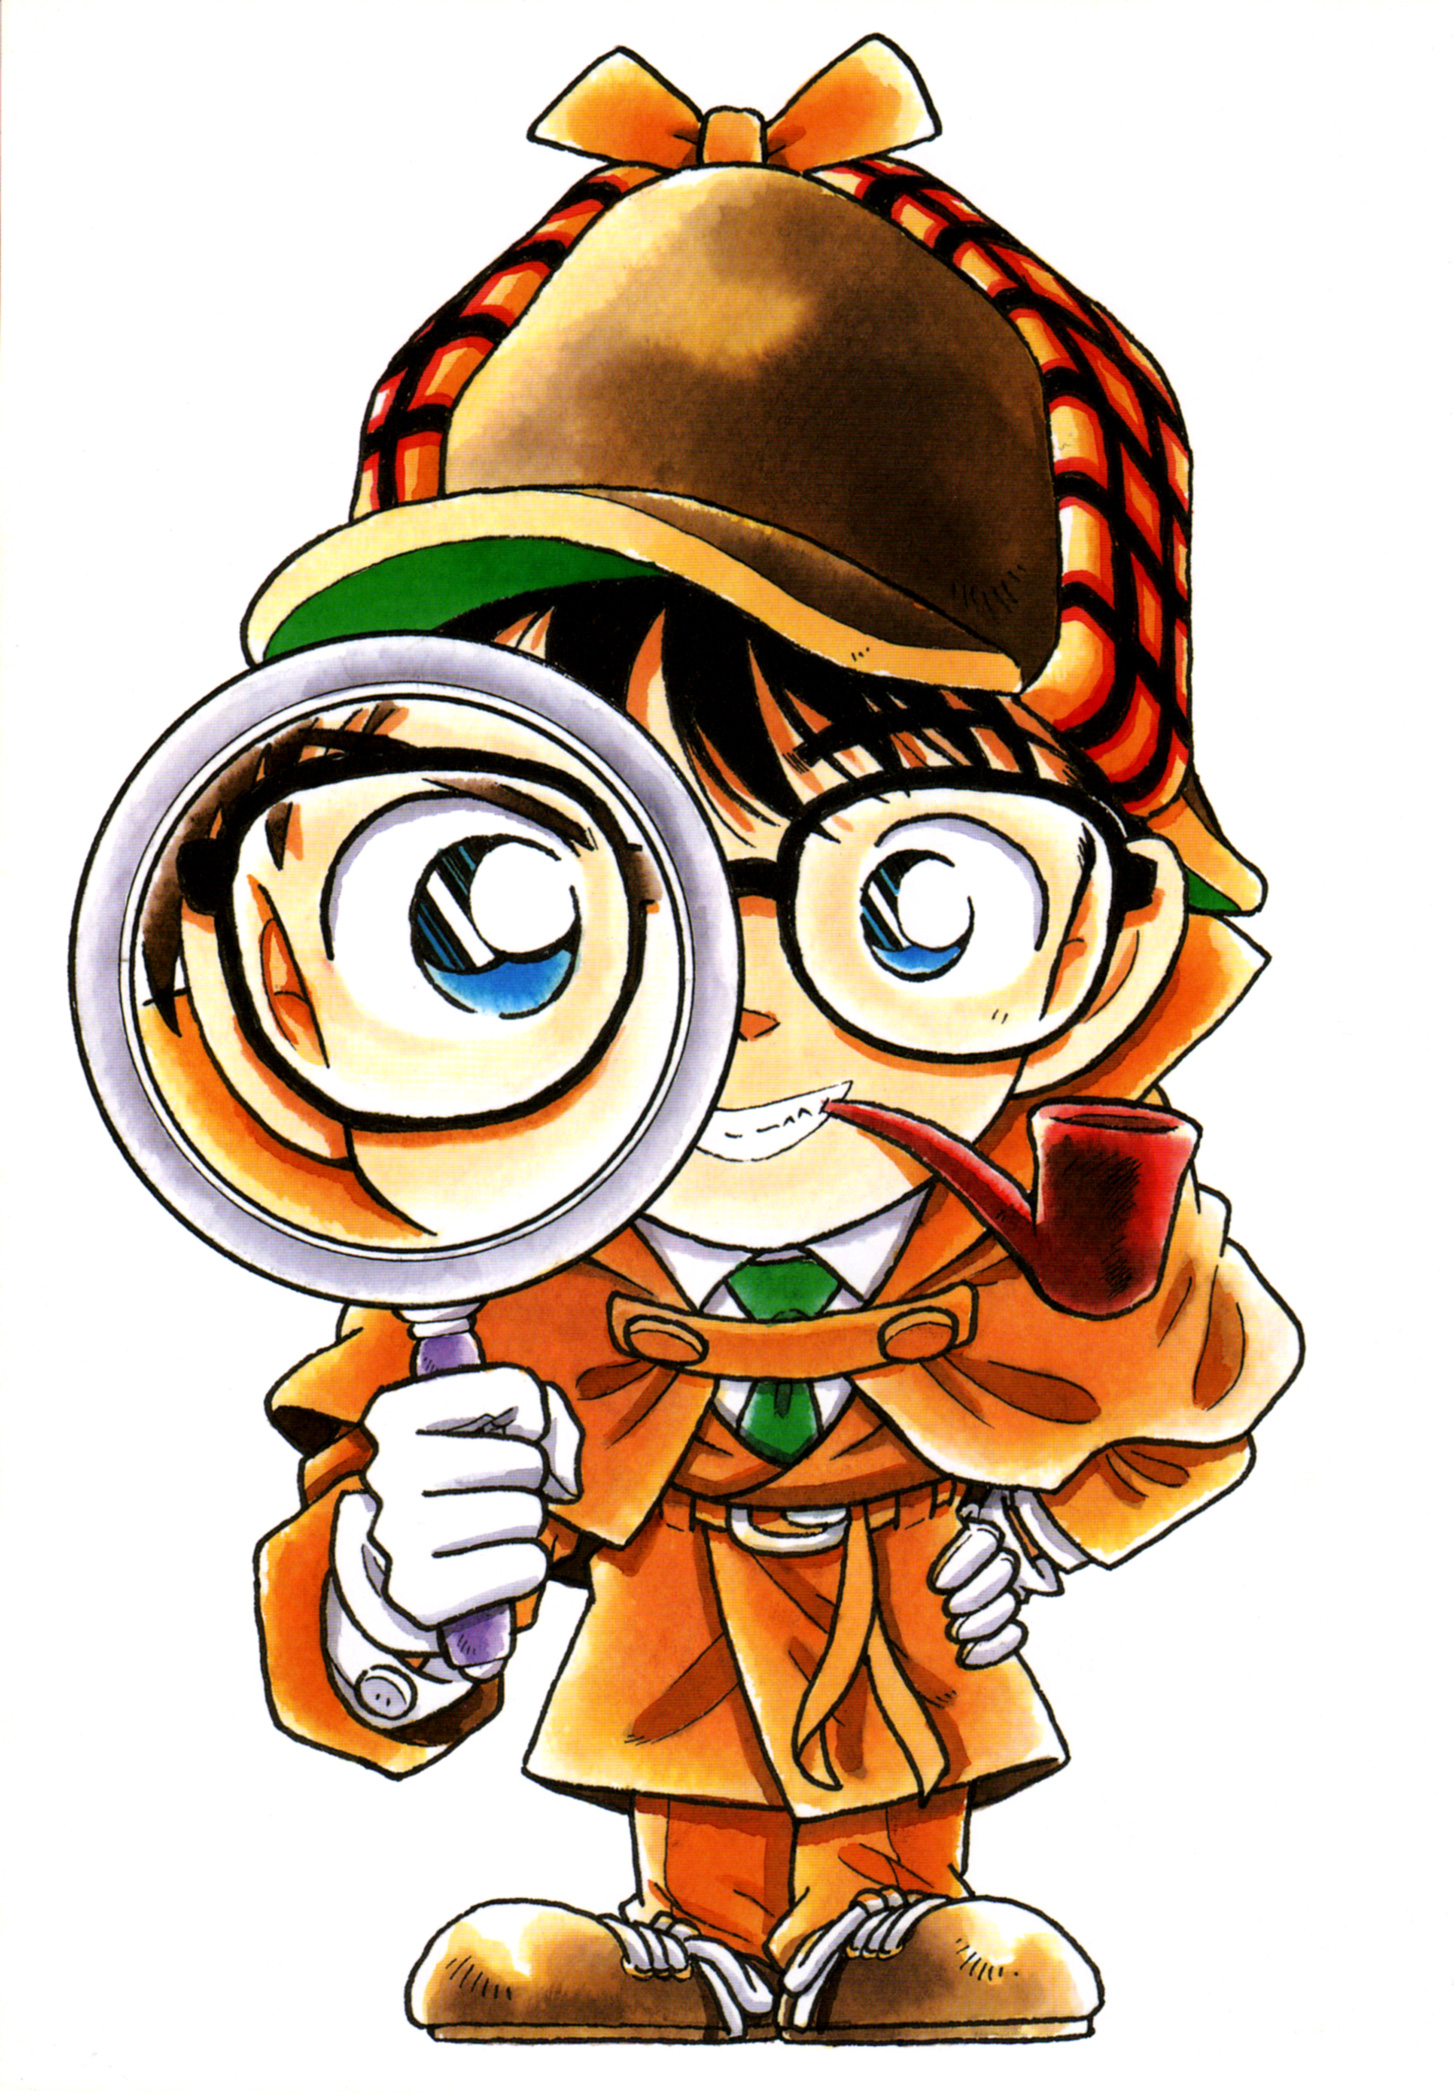 Detective Conan: Conan Edogawa - Wallpaper Actress